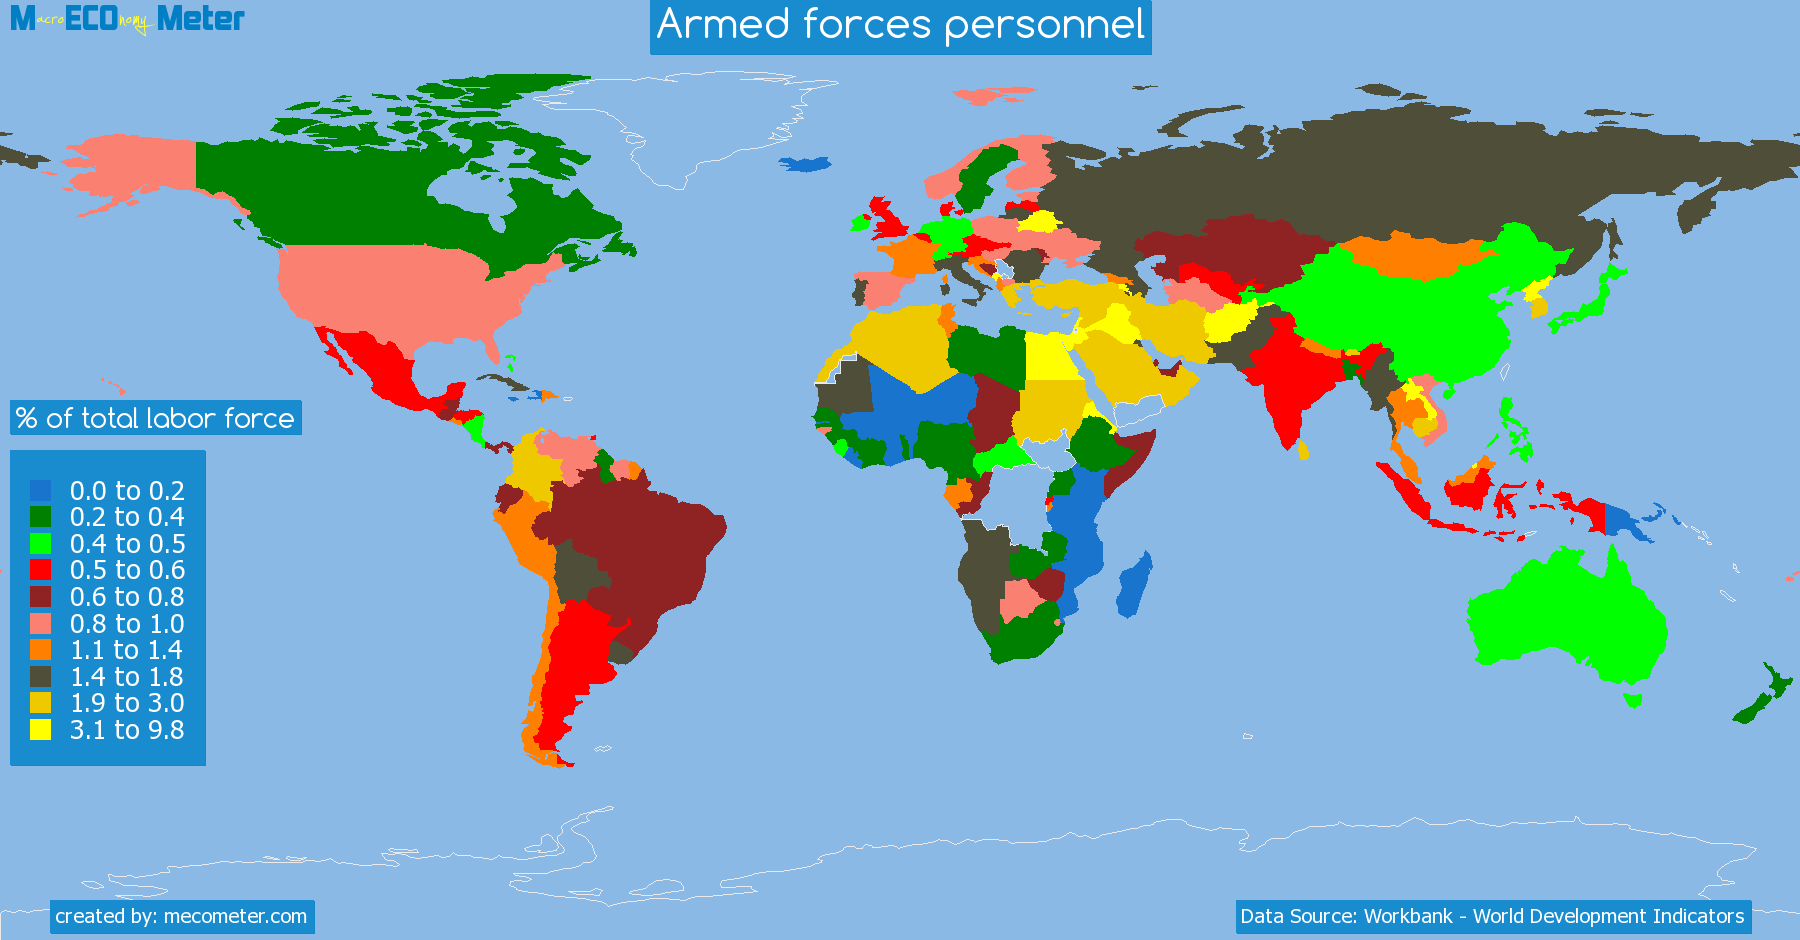 list of countries by Armed forces personnel